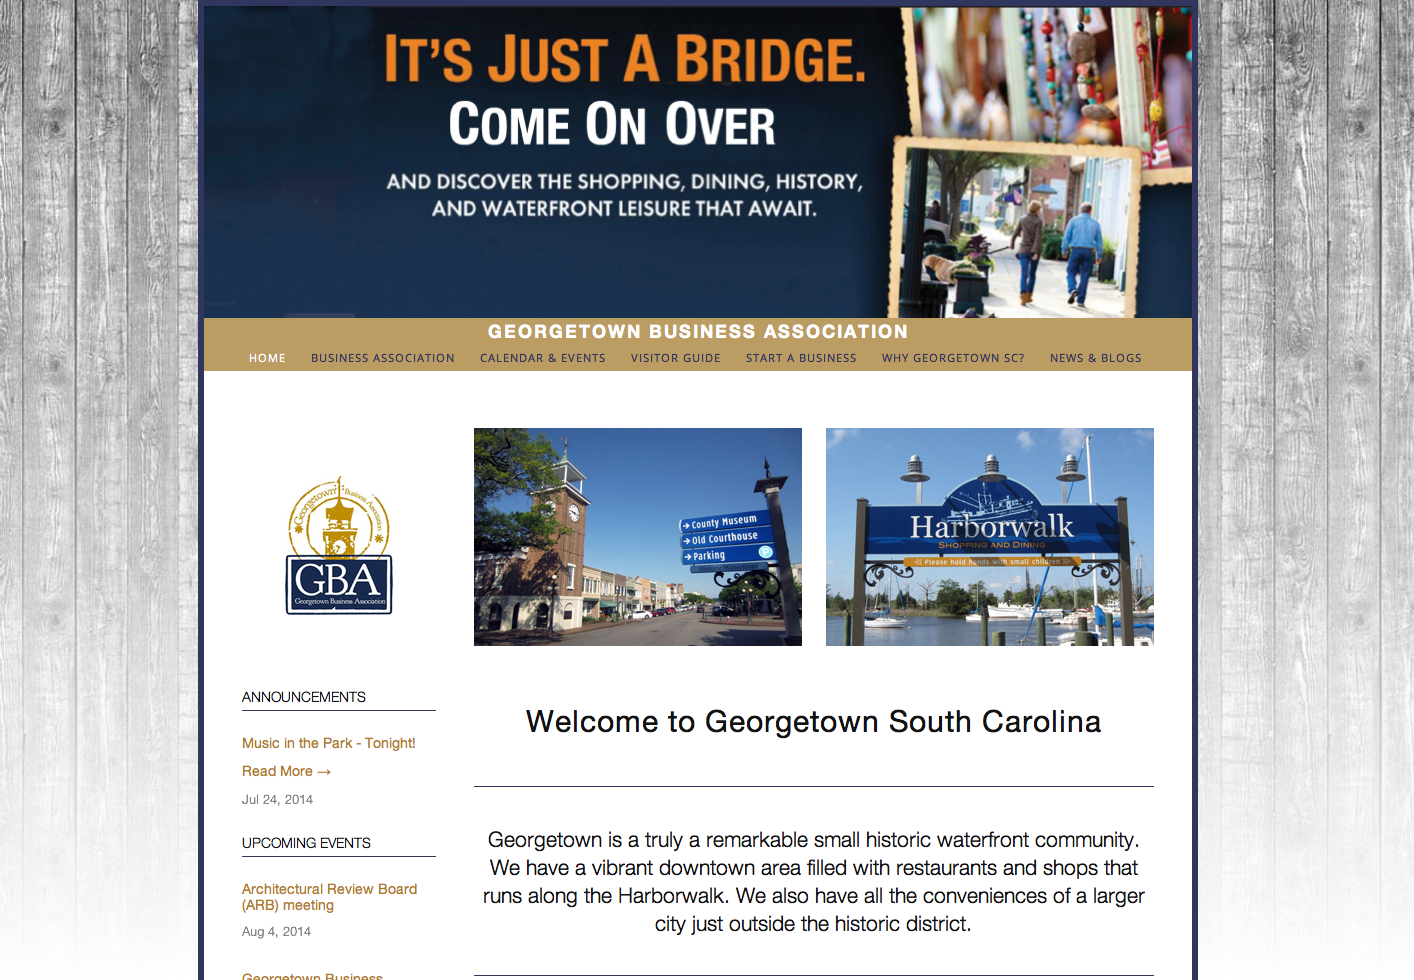 Georgetown Business Association